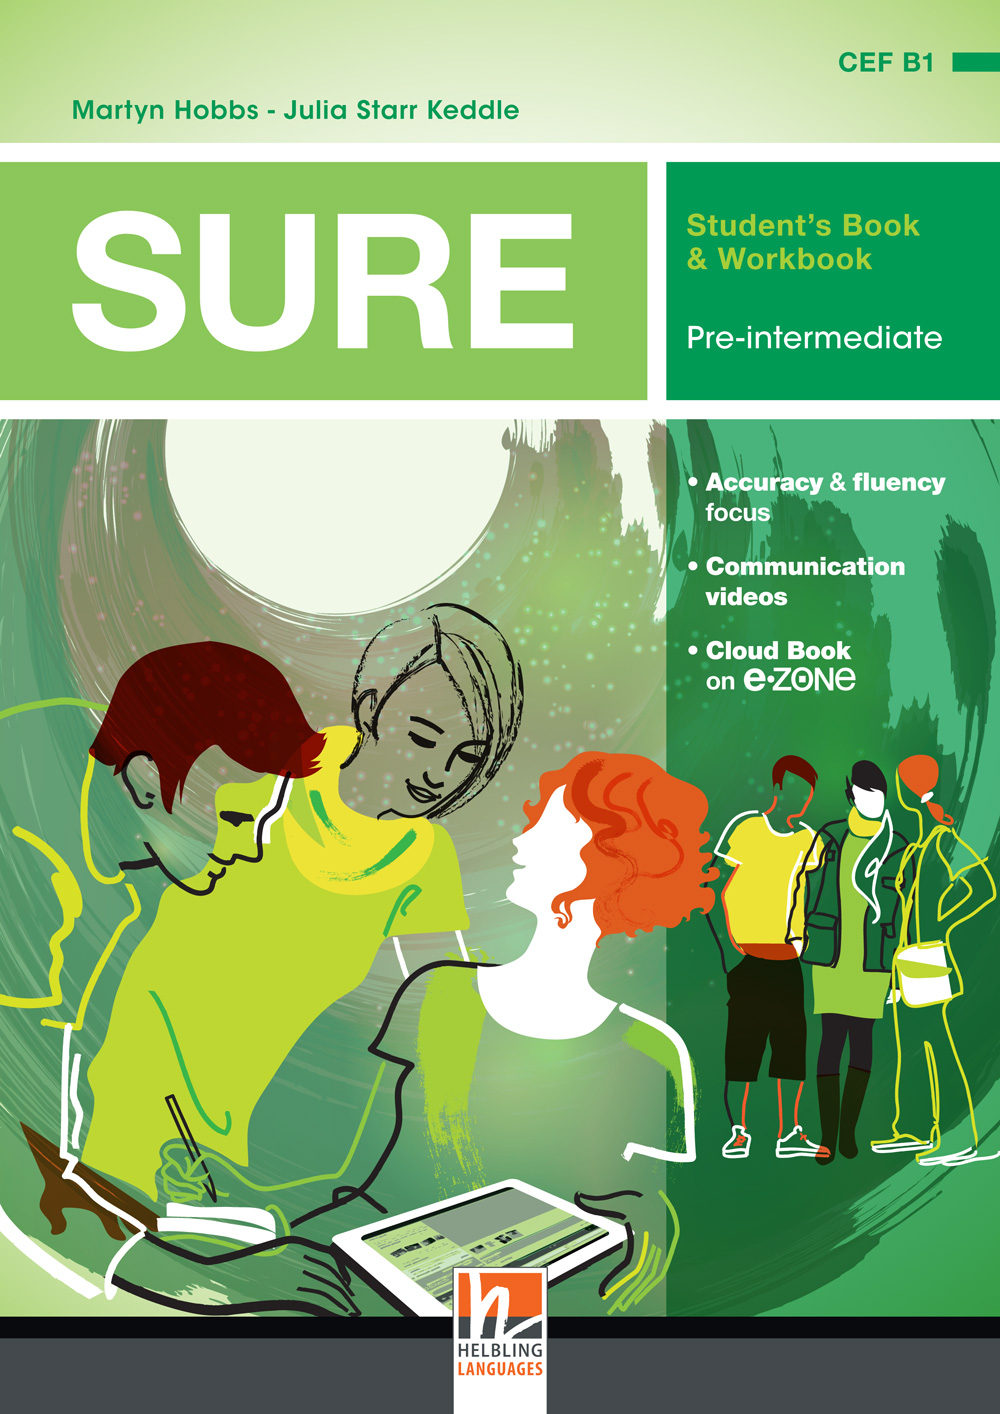 SURE PRE-INTERMEDIATE Student's Book + Workbook + E-zone Access Code